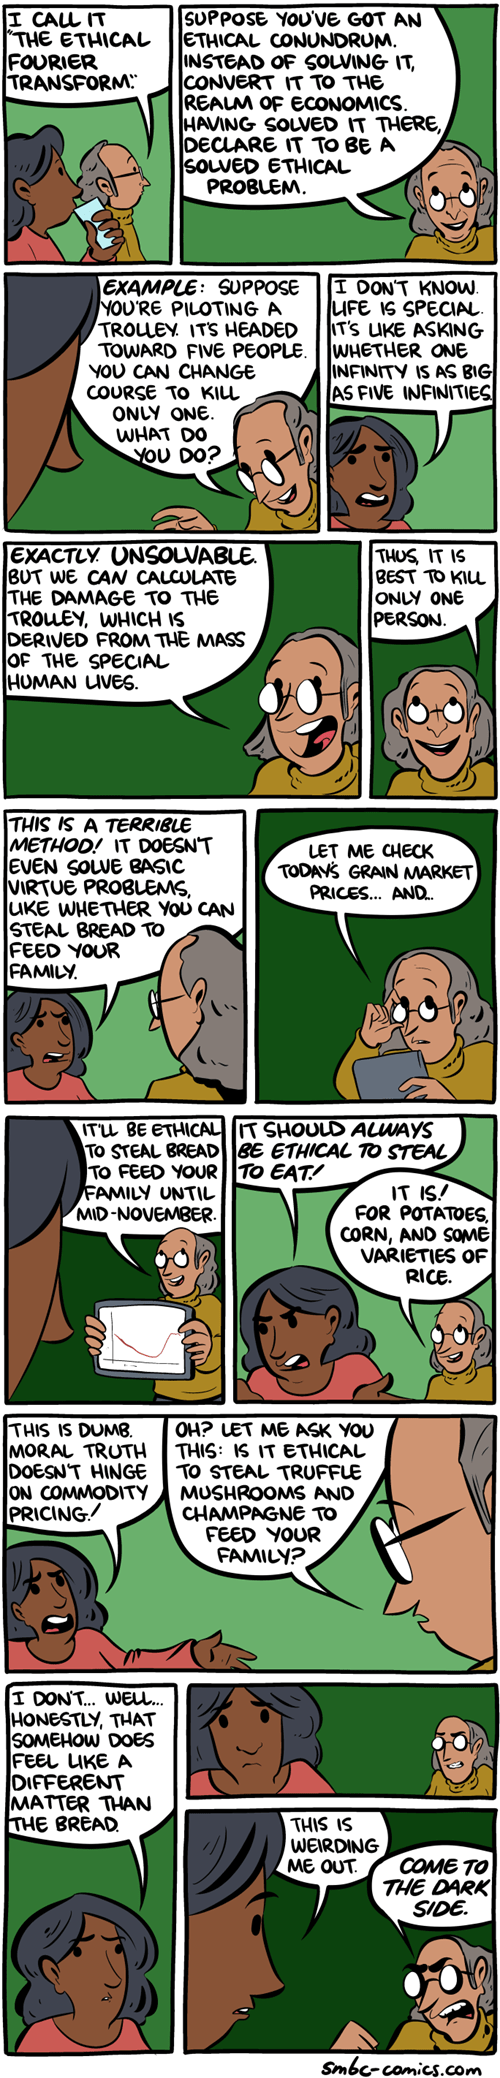 in this economy Economics ethics web comics - 8552883456